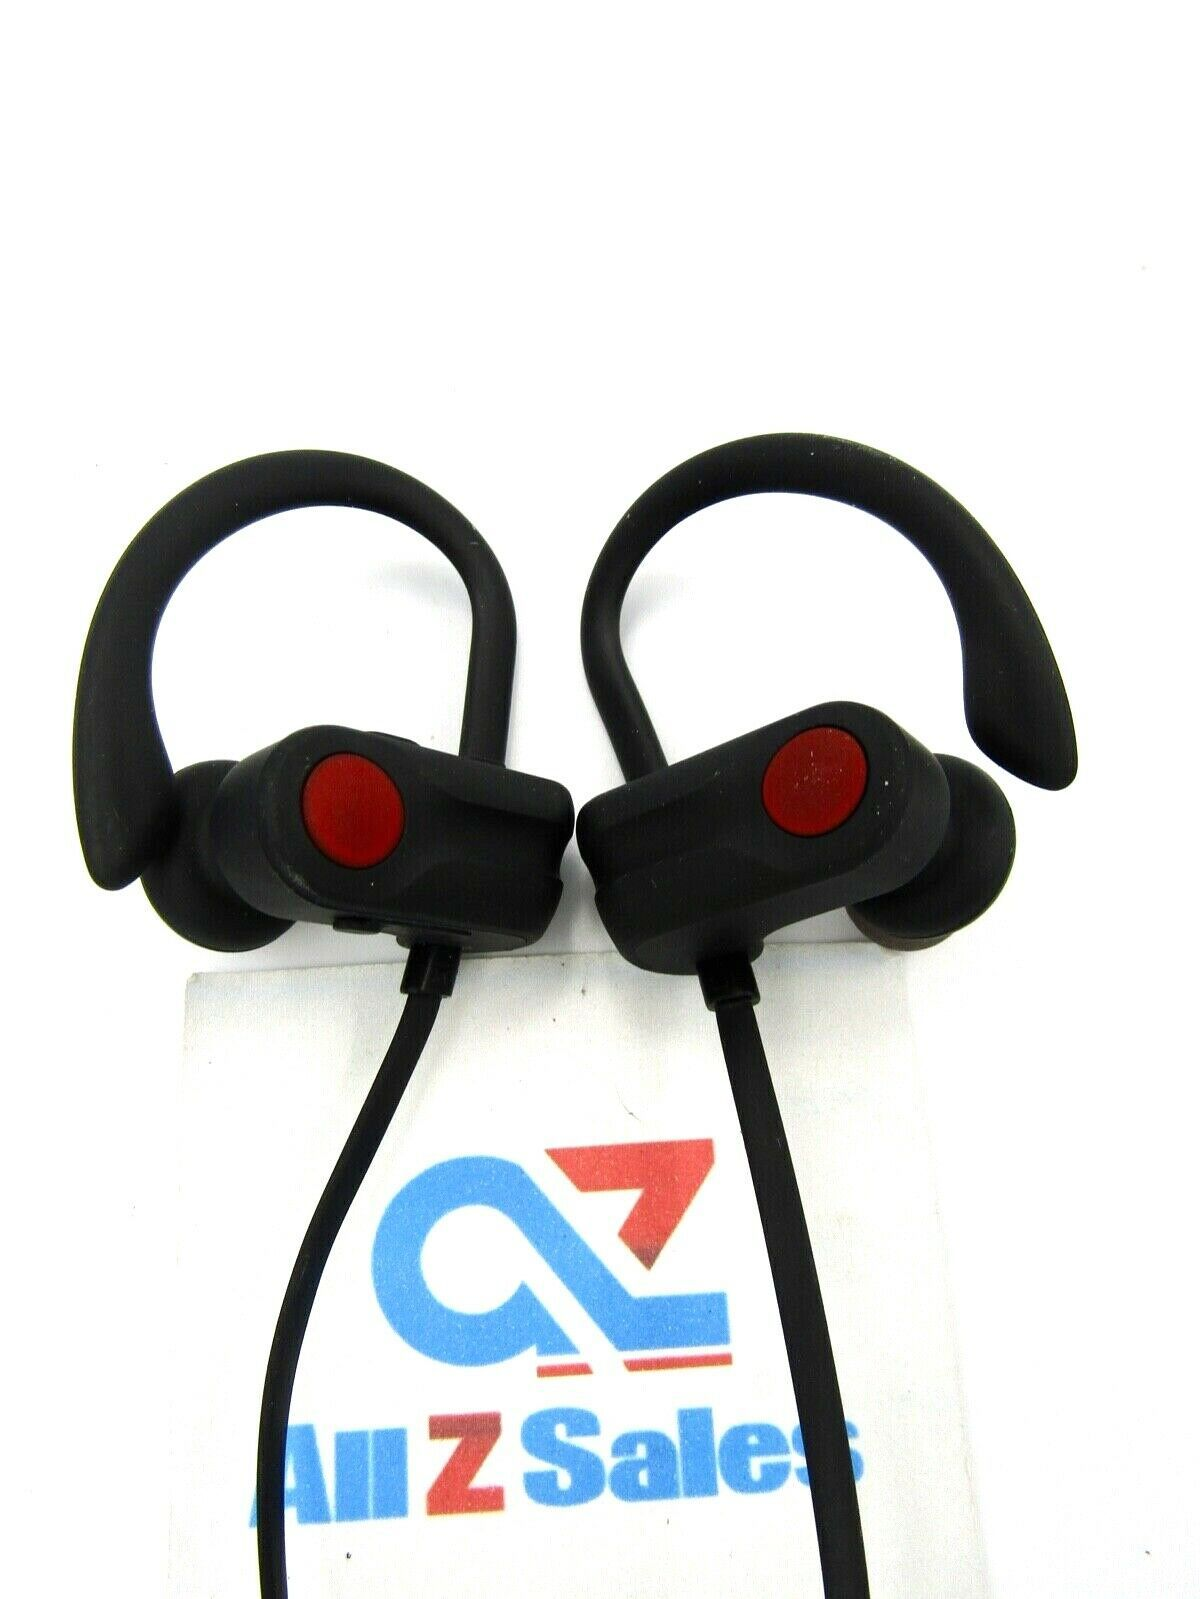 Primary image for A2 Ear-hook Sport Headphones Bluetooth Wireless Stereo, Black/Red - Used